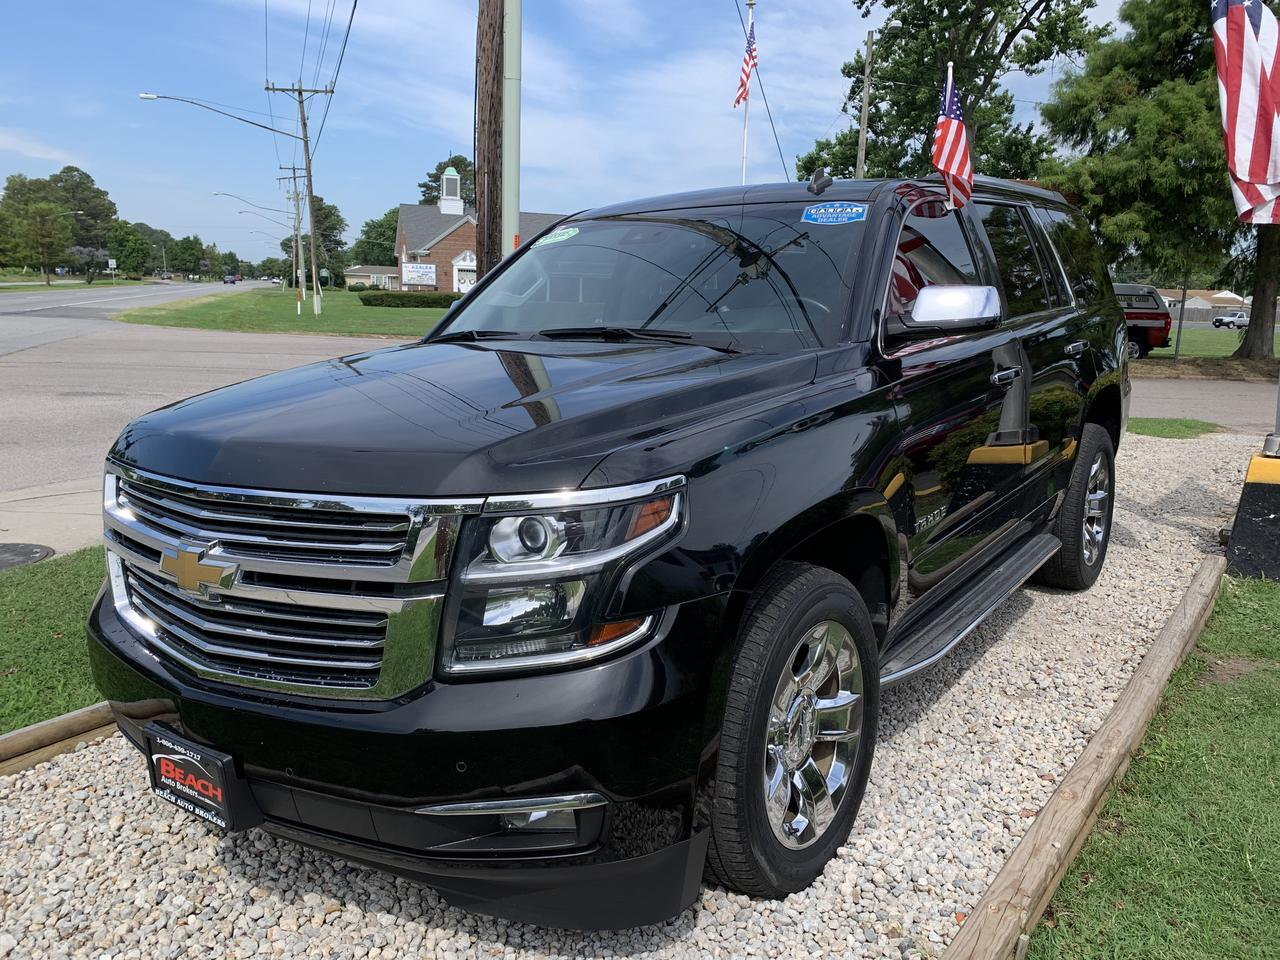 2015 CHEVROLET TAHOE LTZ 4X4, WARRANTY, LEATHER, NAV, SUNROOF, HEATED/COOLED SEATS, 3RD ROW, BACKUP CAM, CAPTAINS CHAIRS! Norfolk VA